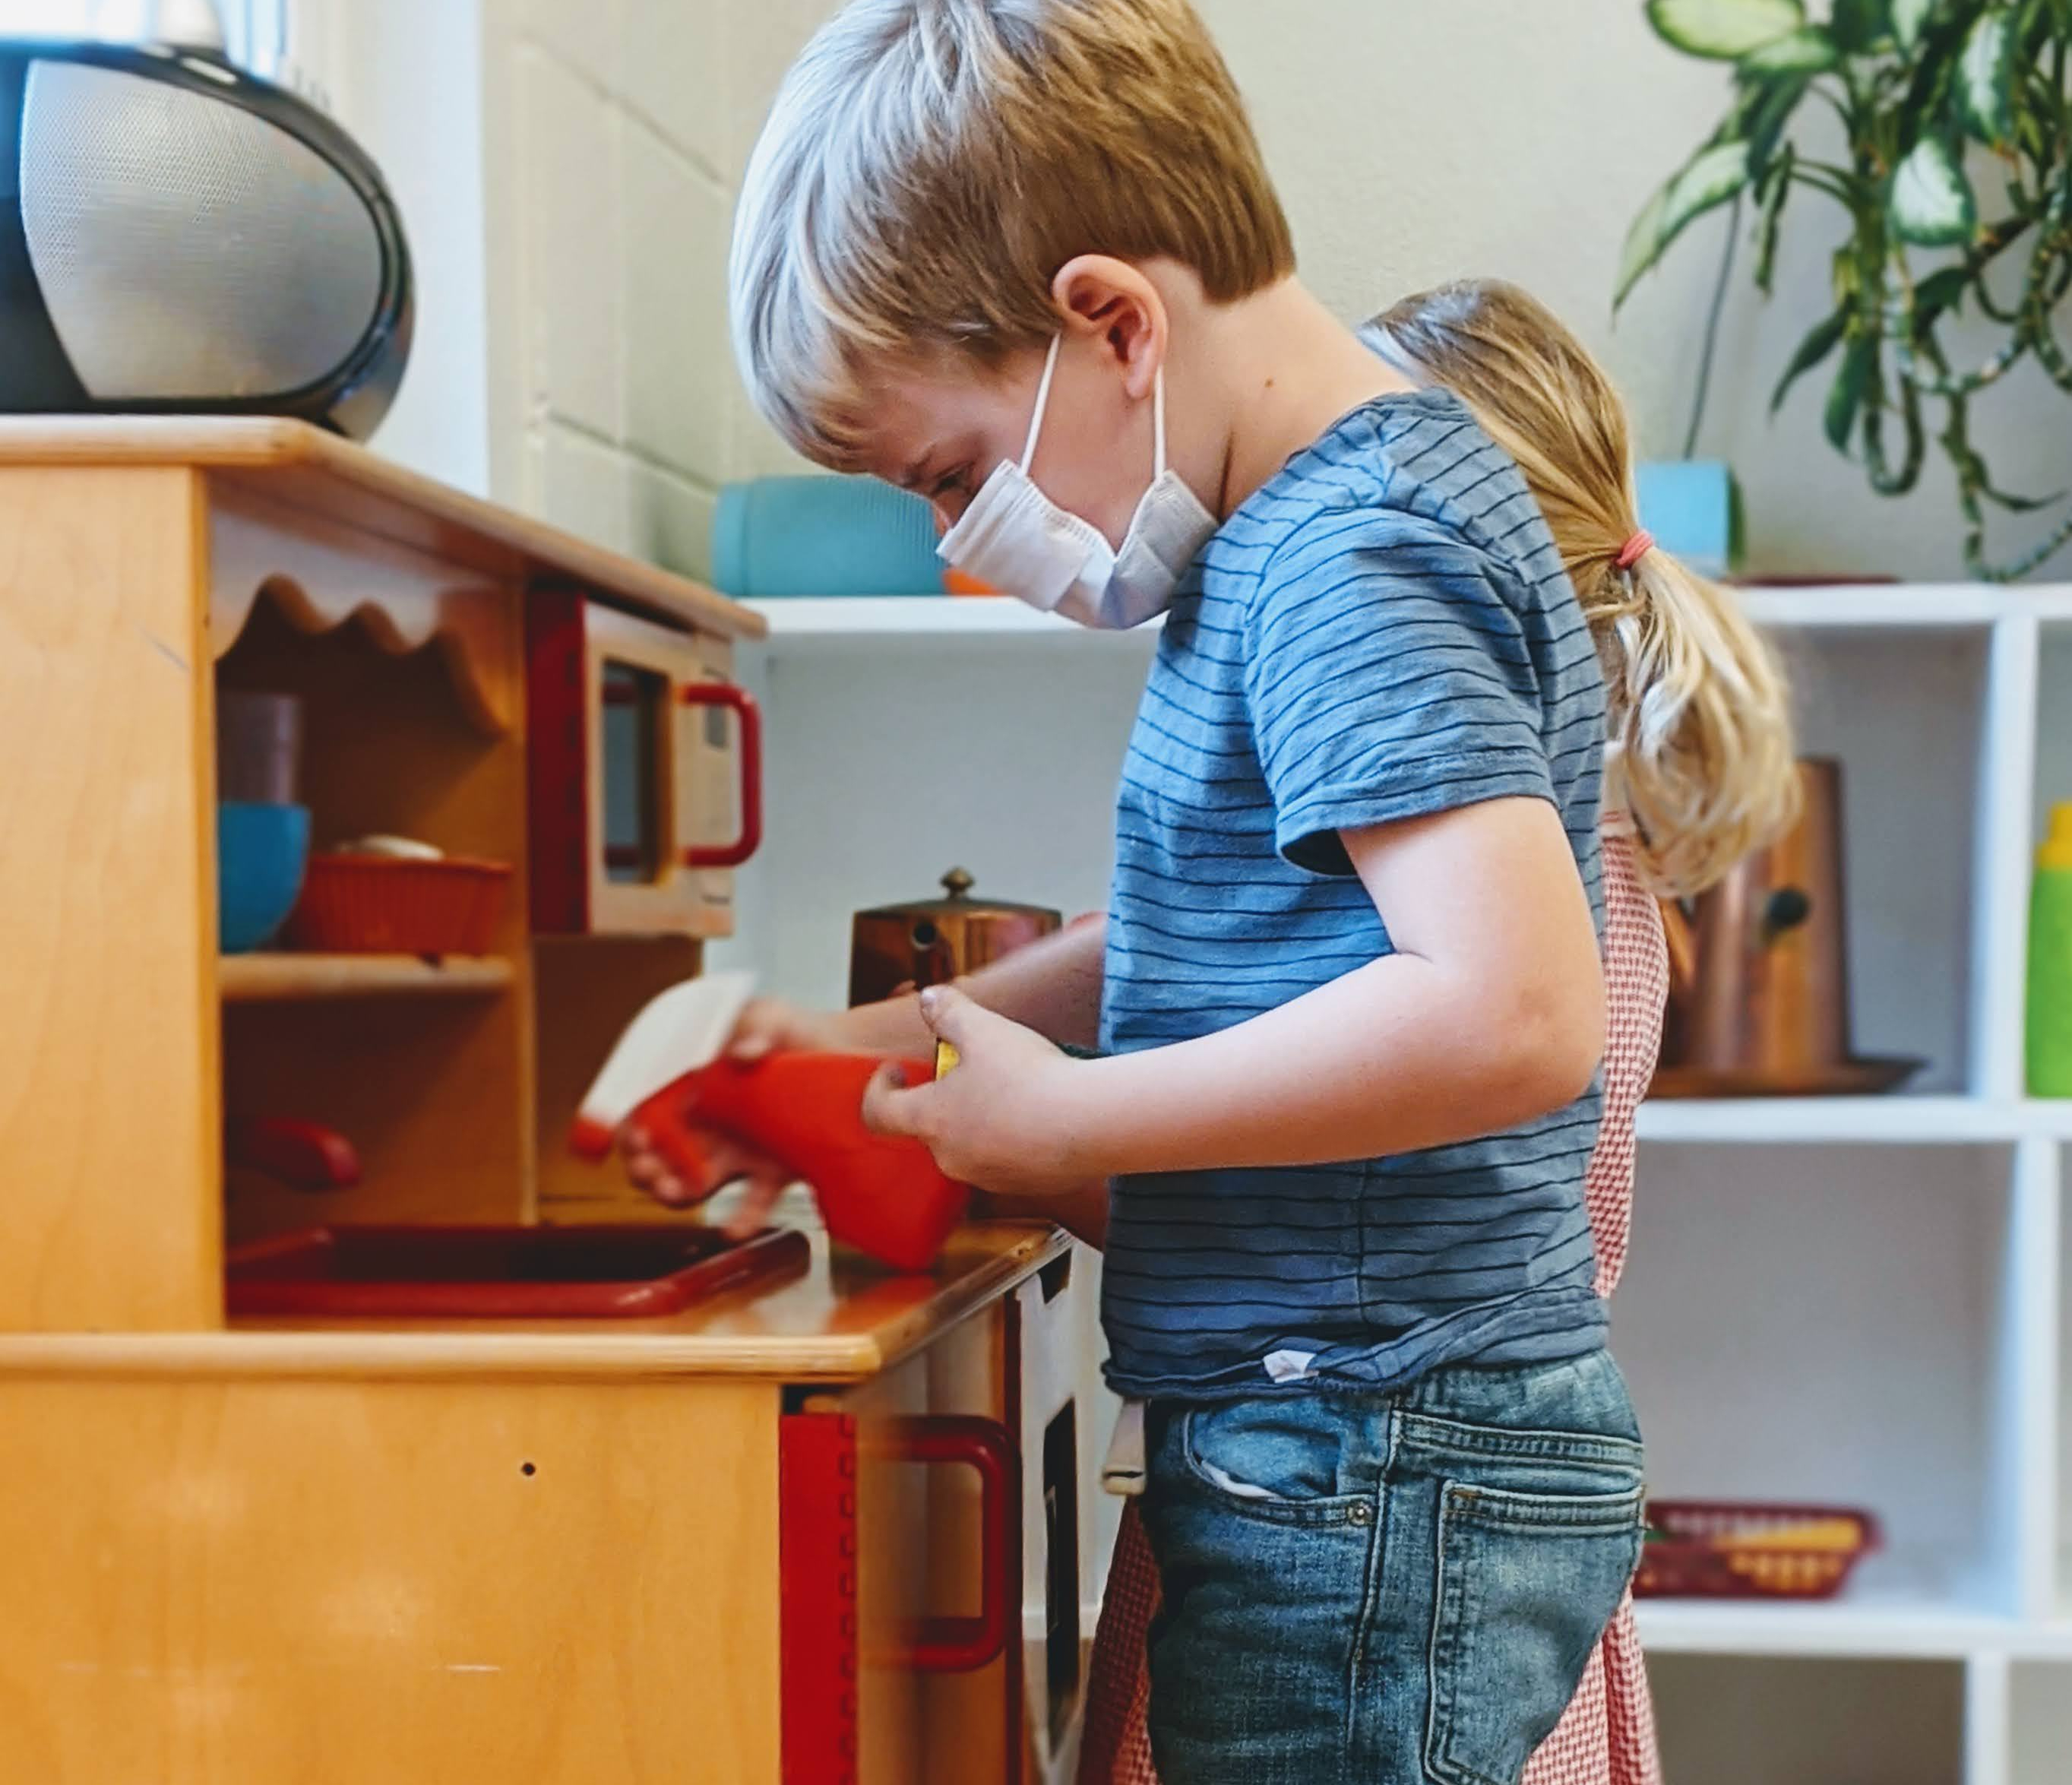 Child cleaning up pretend kitchen areas